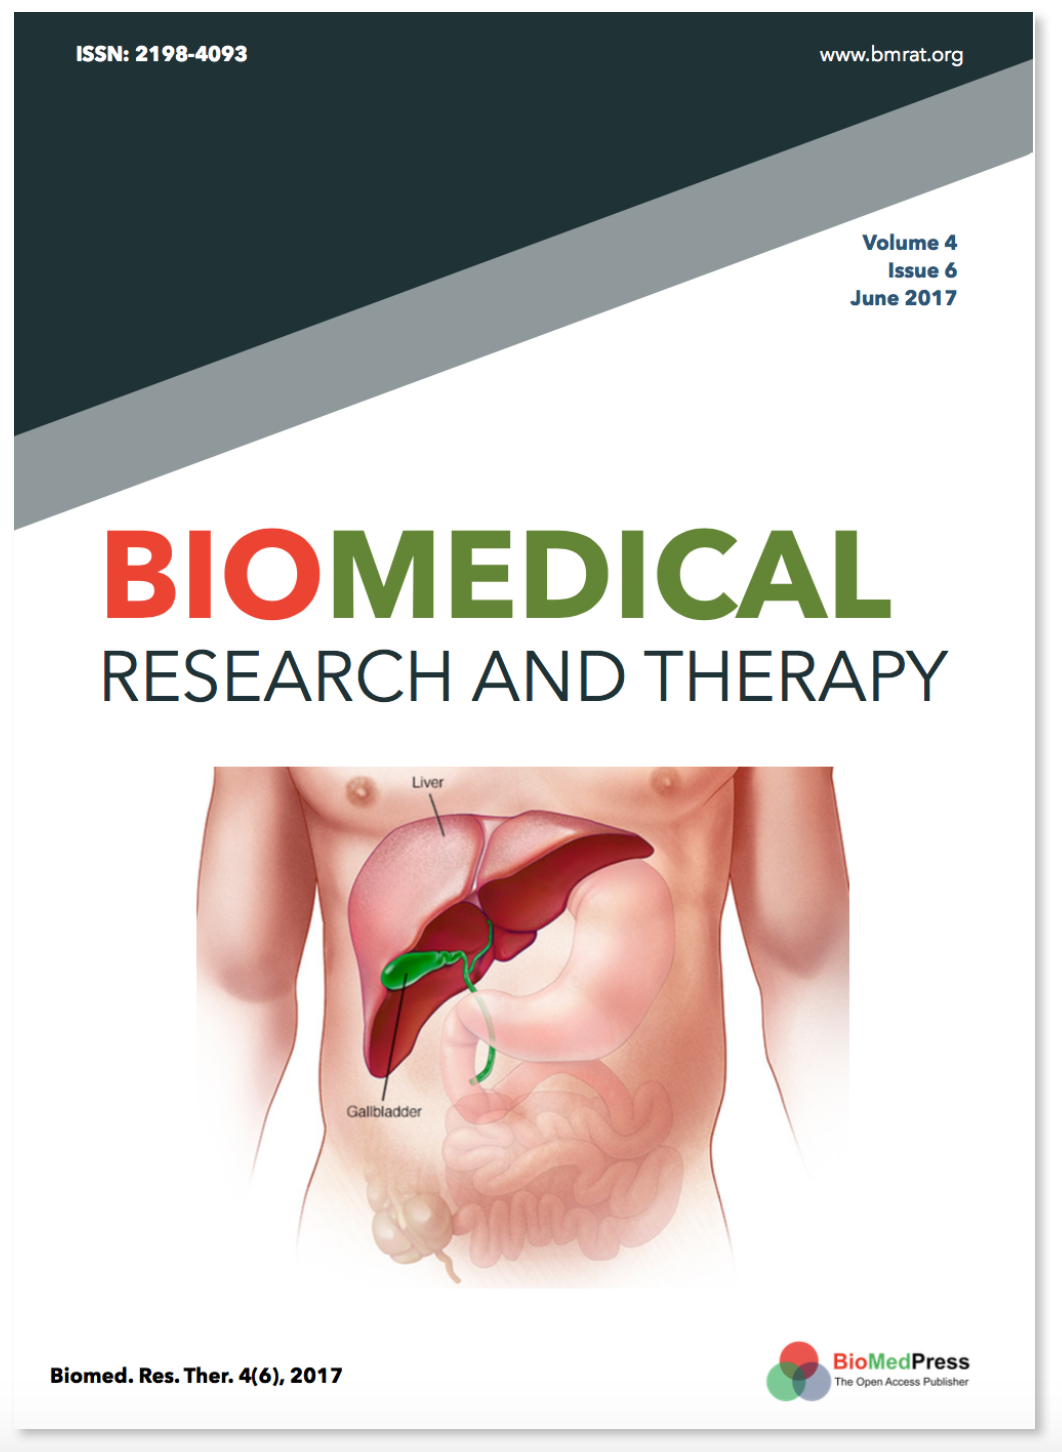 BioMedPress   Biomedical Research and Therapy